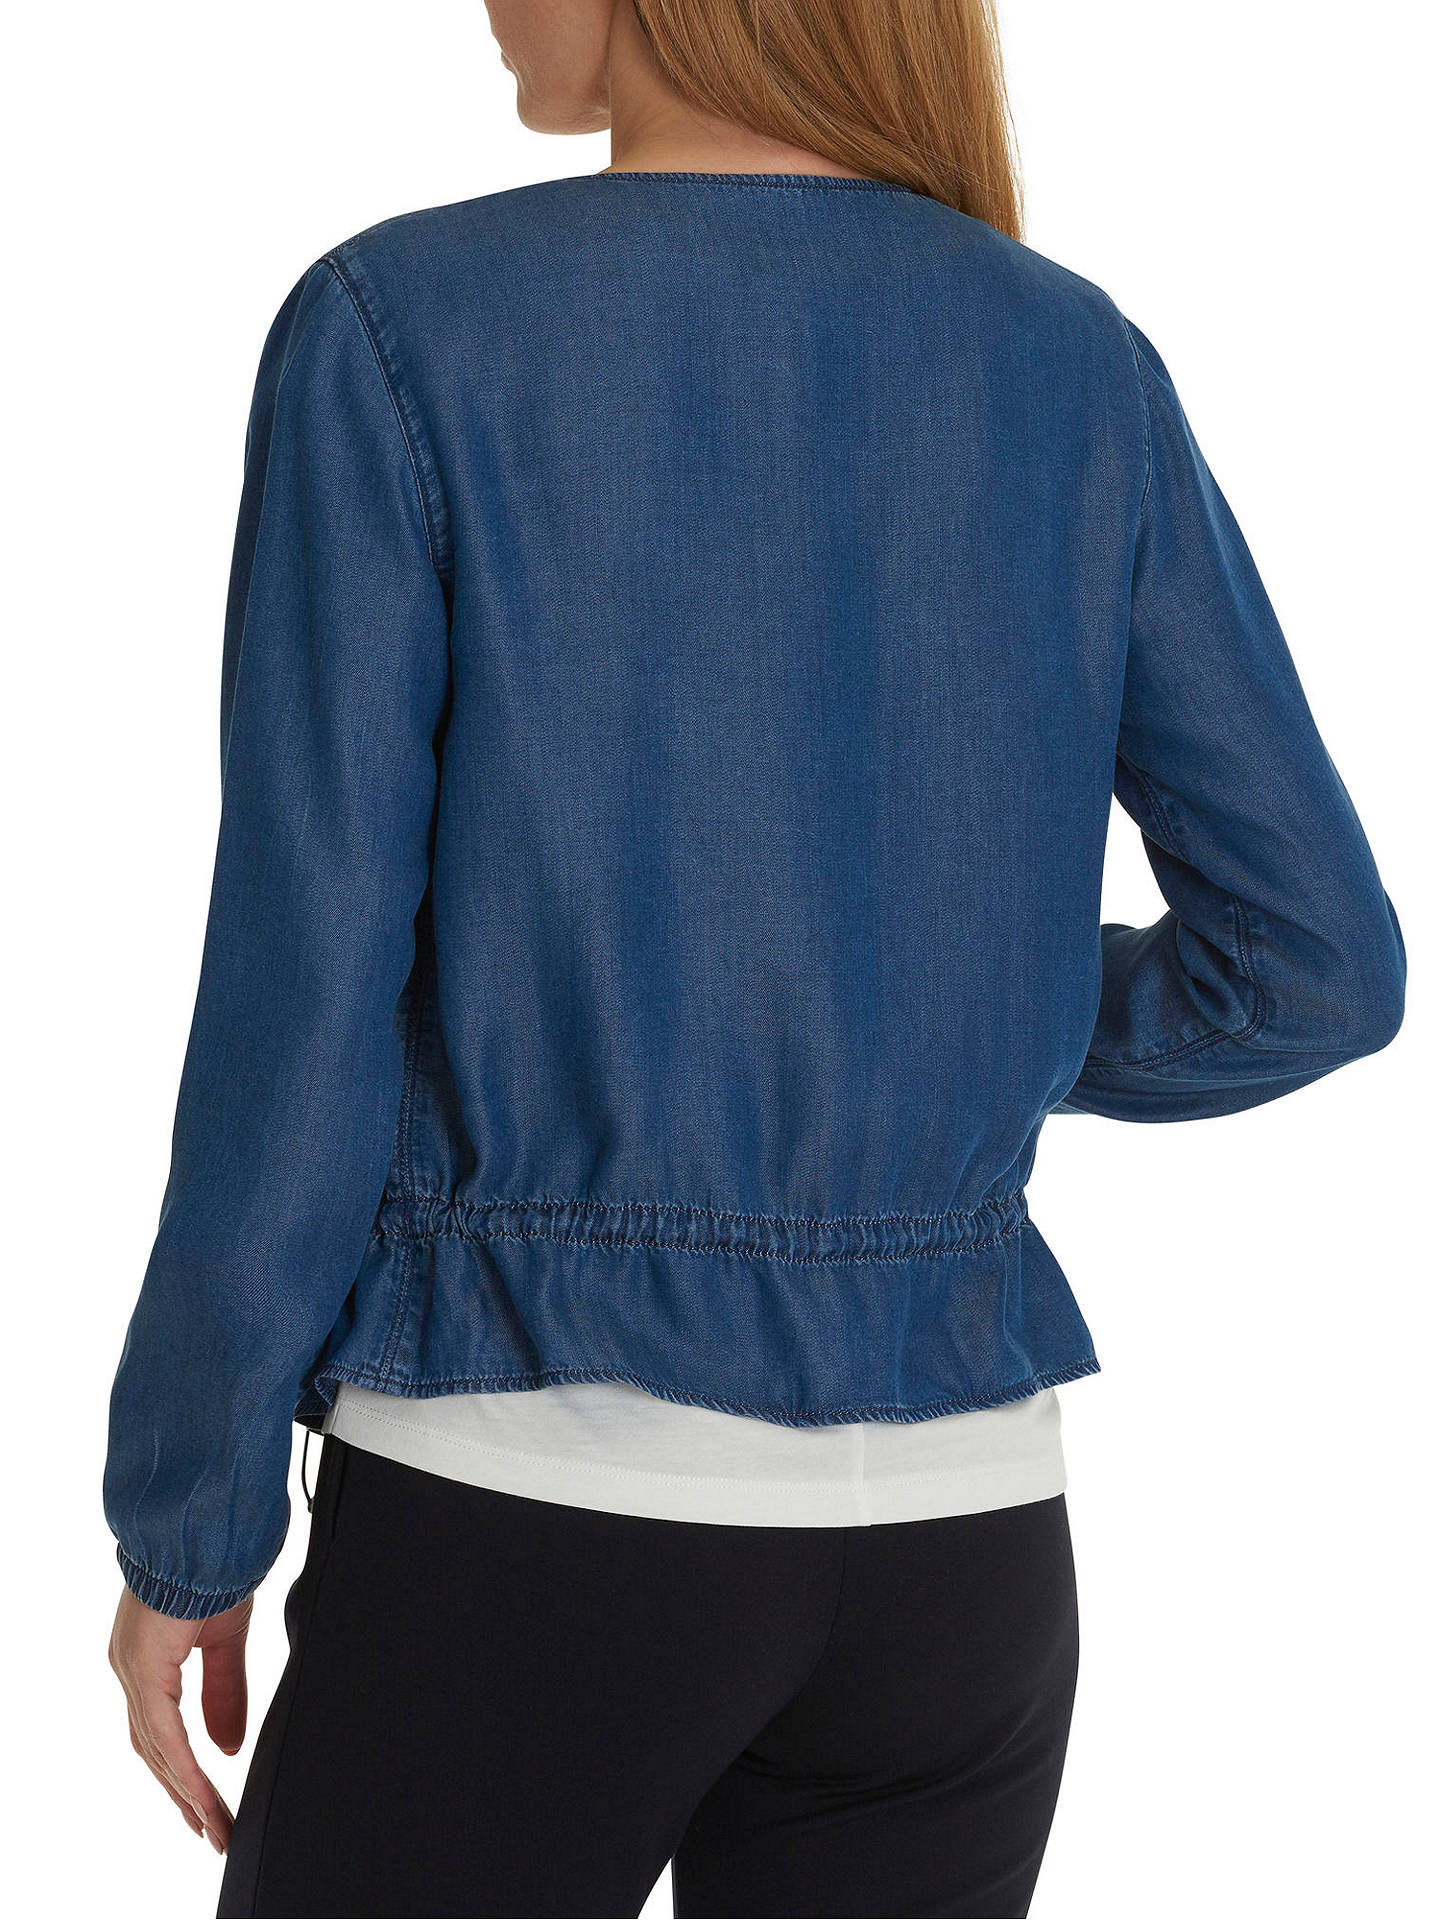 BuyBetty & Co. Zip Front Jacket, Blue Denim, 10 Online at johnlewis.com